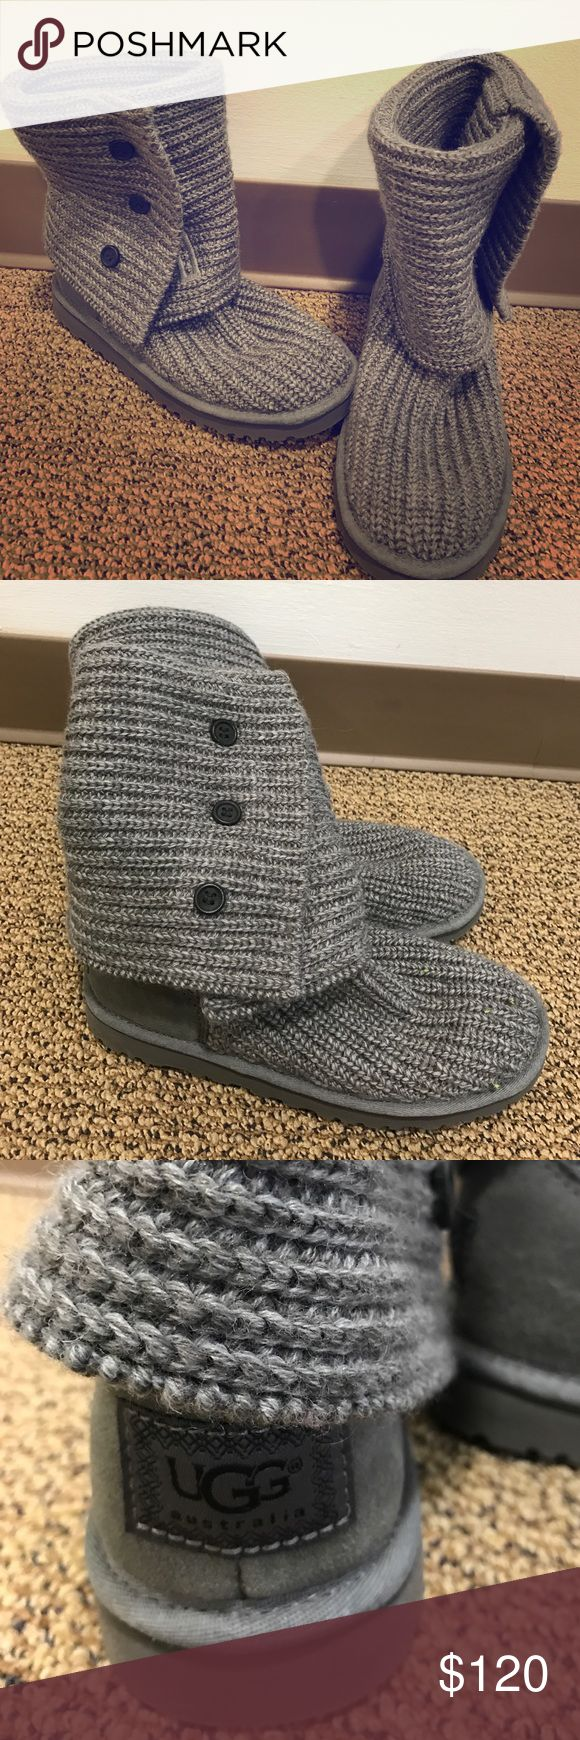 Size 7 grey UGG cardy boots Like new Ugg boots. Size 7. Grey. Classic cardy style UGG Shoes Winter & Rain Boots